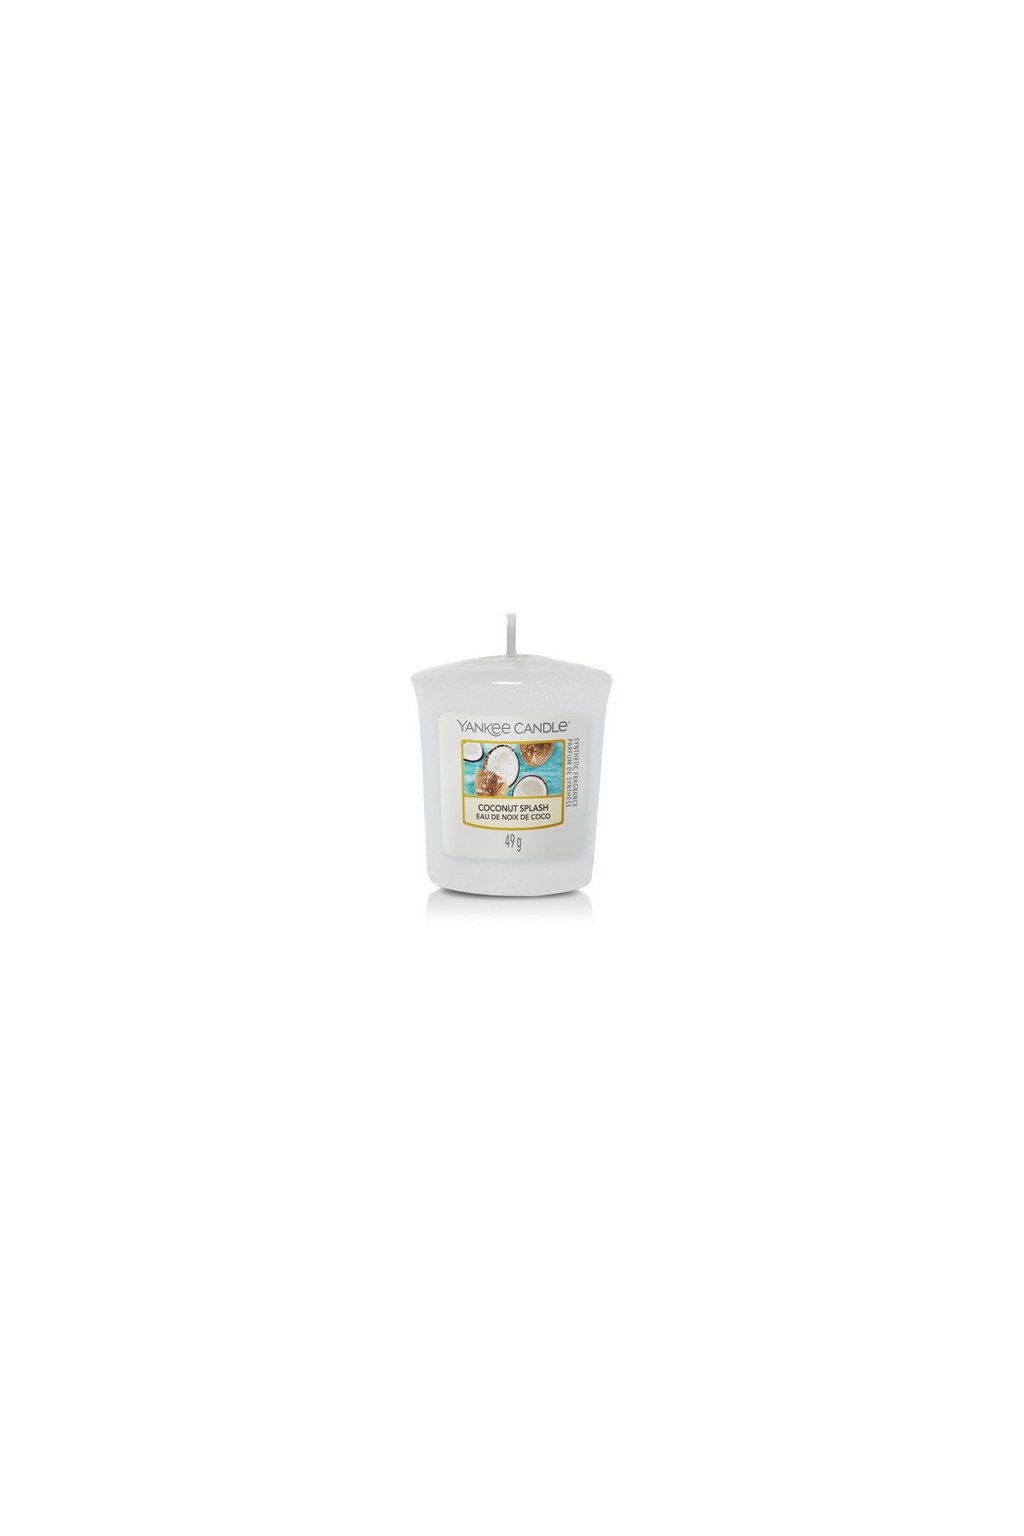 Yankee Candle Coconut Splash 49g